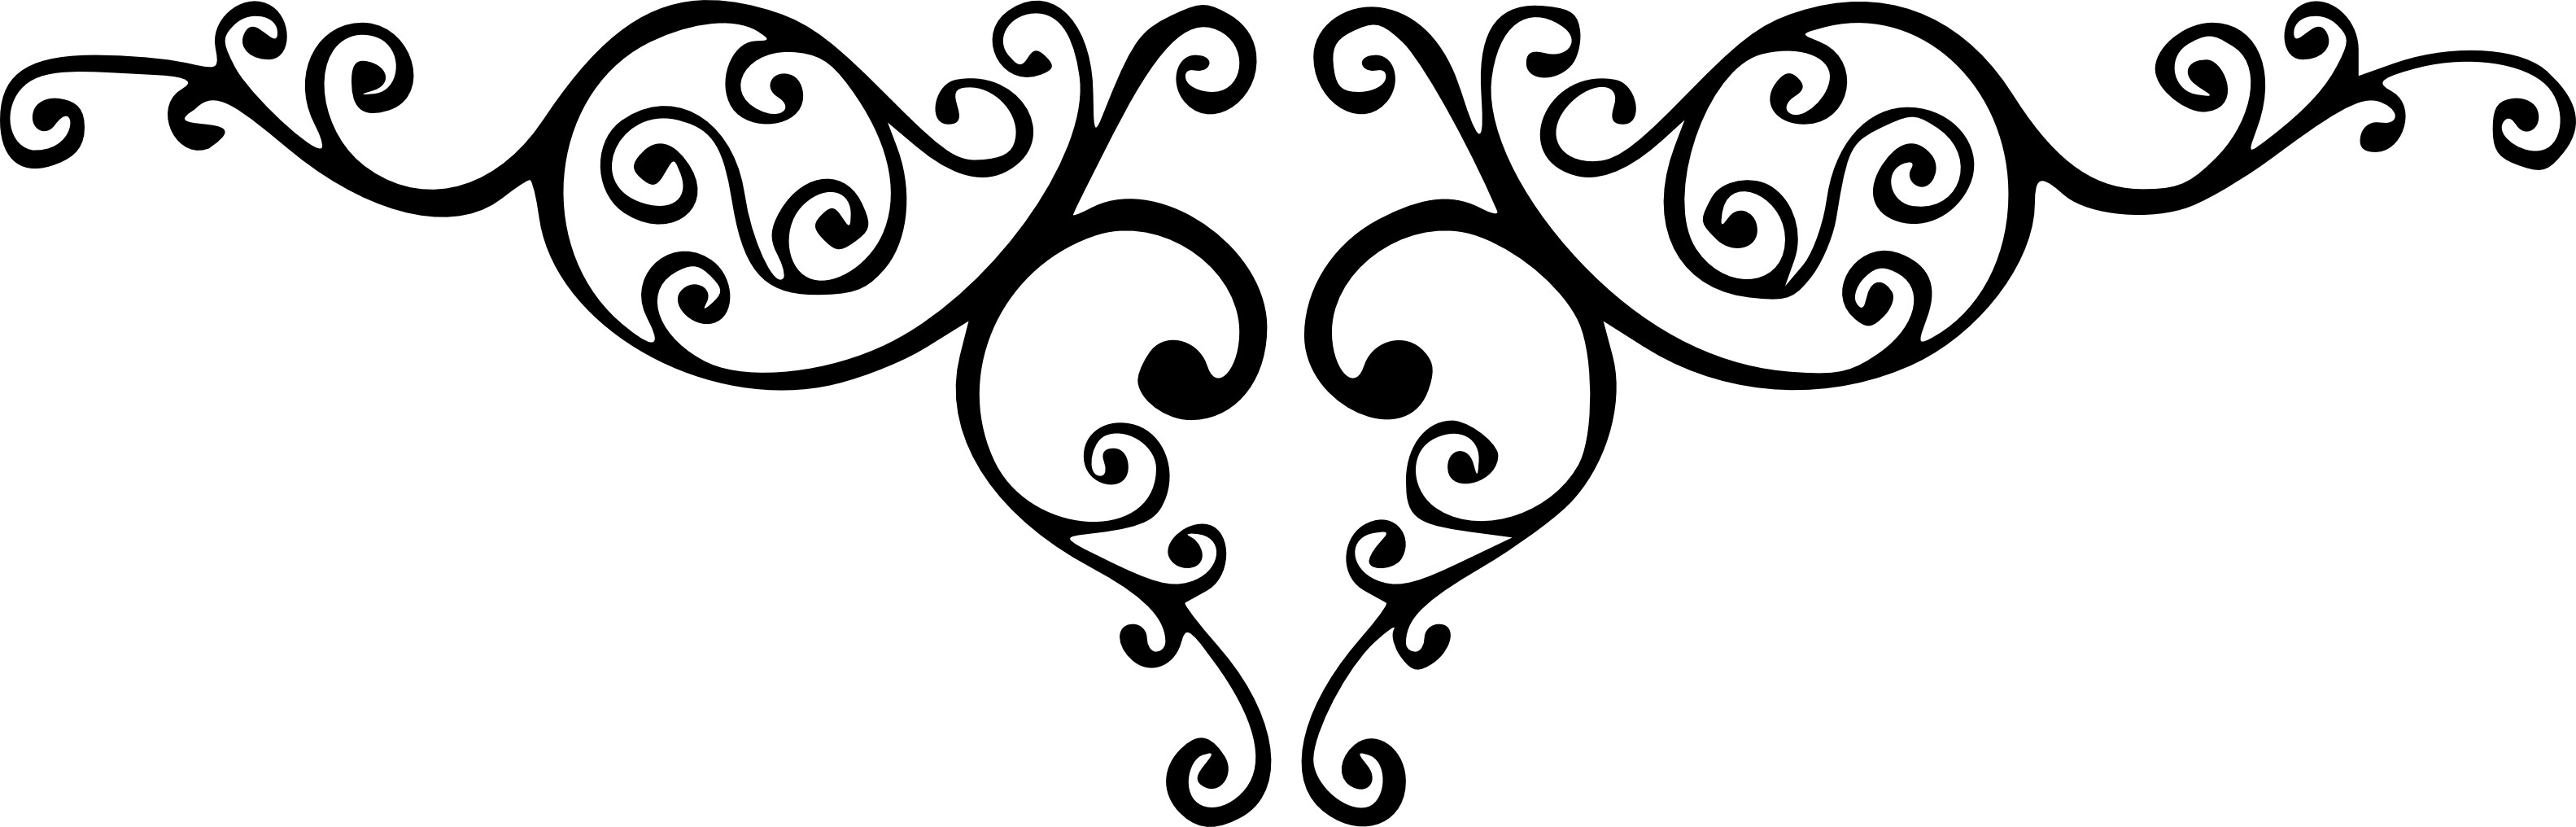 3166x1016 Filigree Heart Banner Transparent